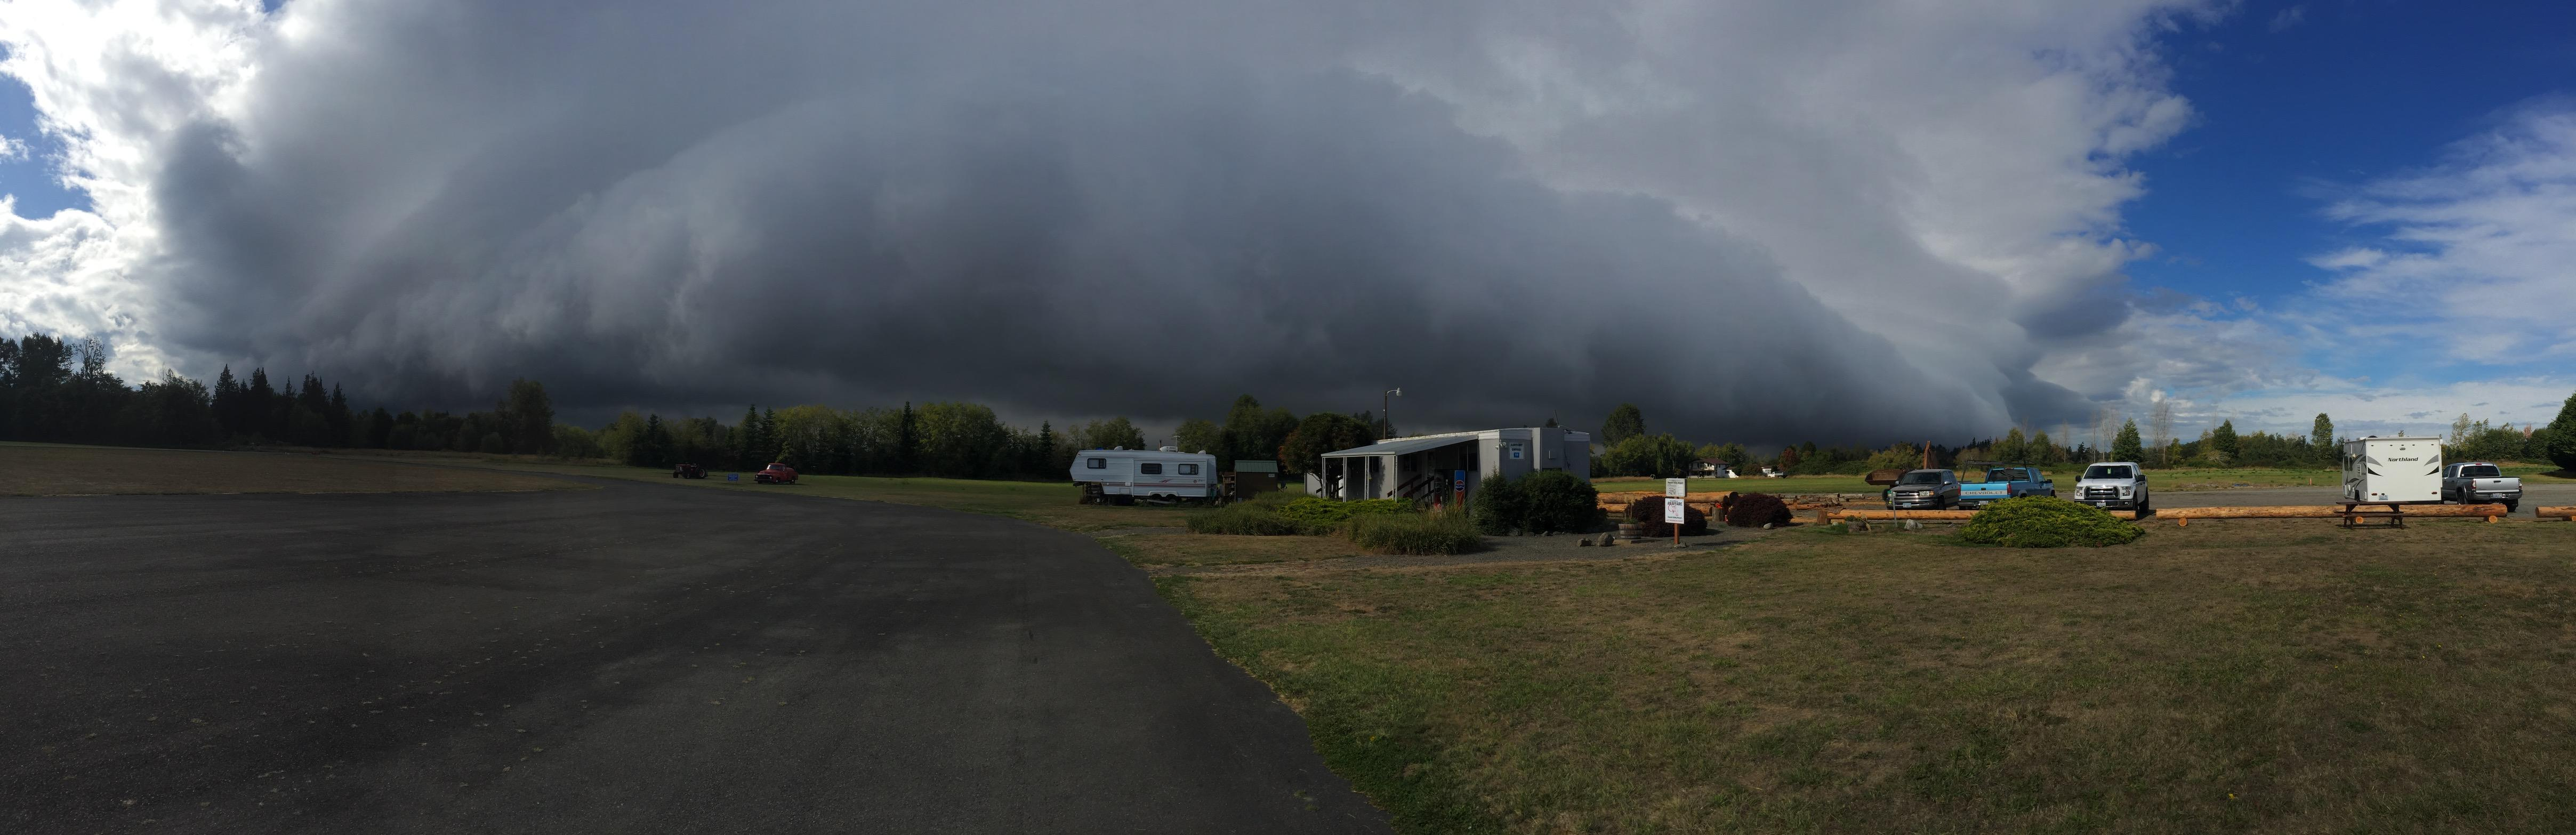 A shelf cloud is spotted in Sequim, Wash. on Sept. 29, 2017 (Photo: Andy Sallee)